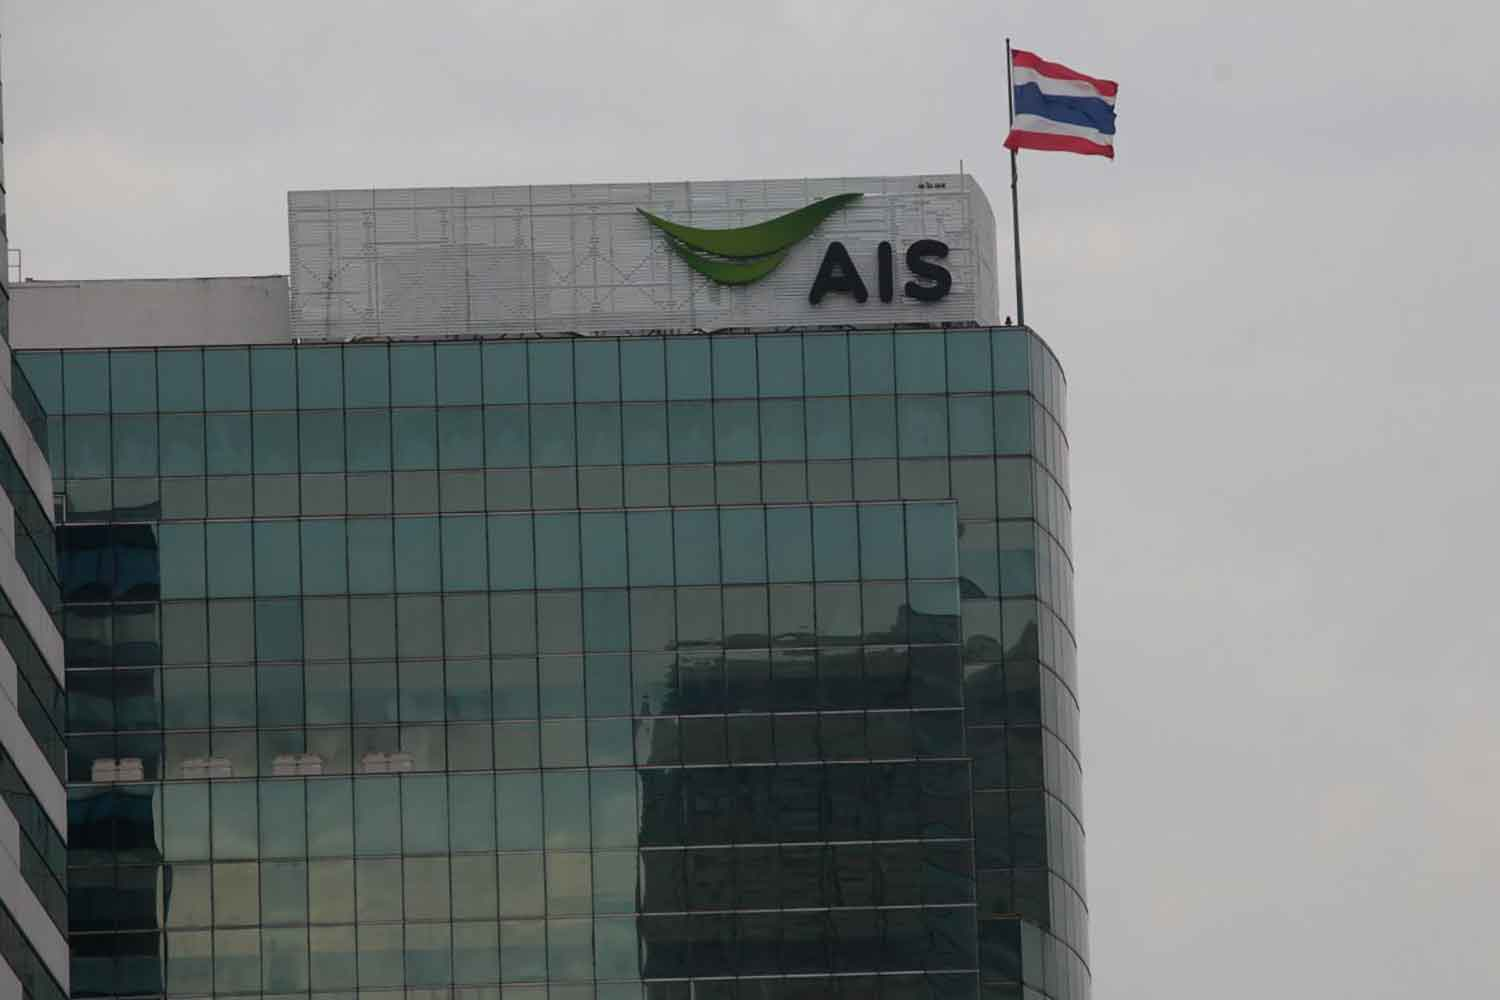 The Bangkok headquarters of Advanced Info Service. (Photo: Pawat Laupaisarntaksin)